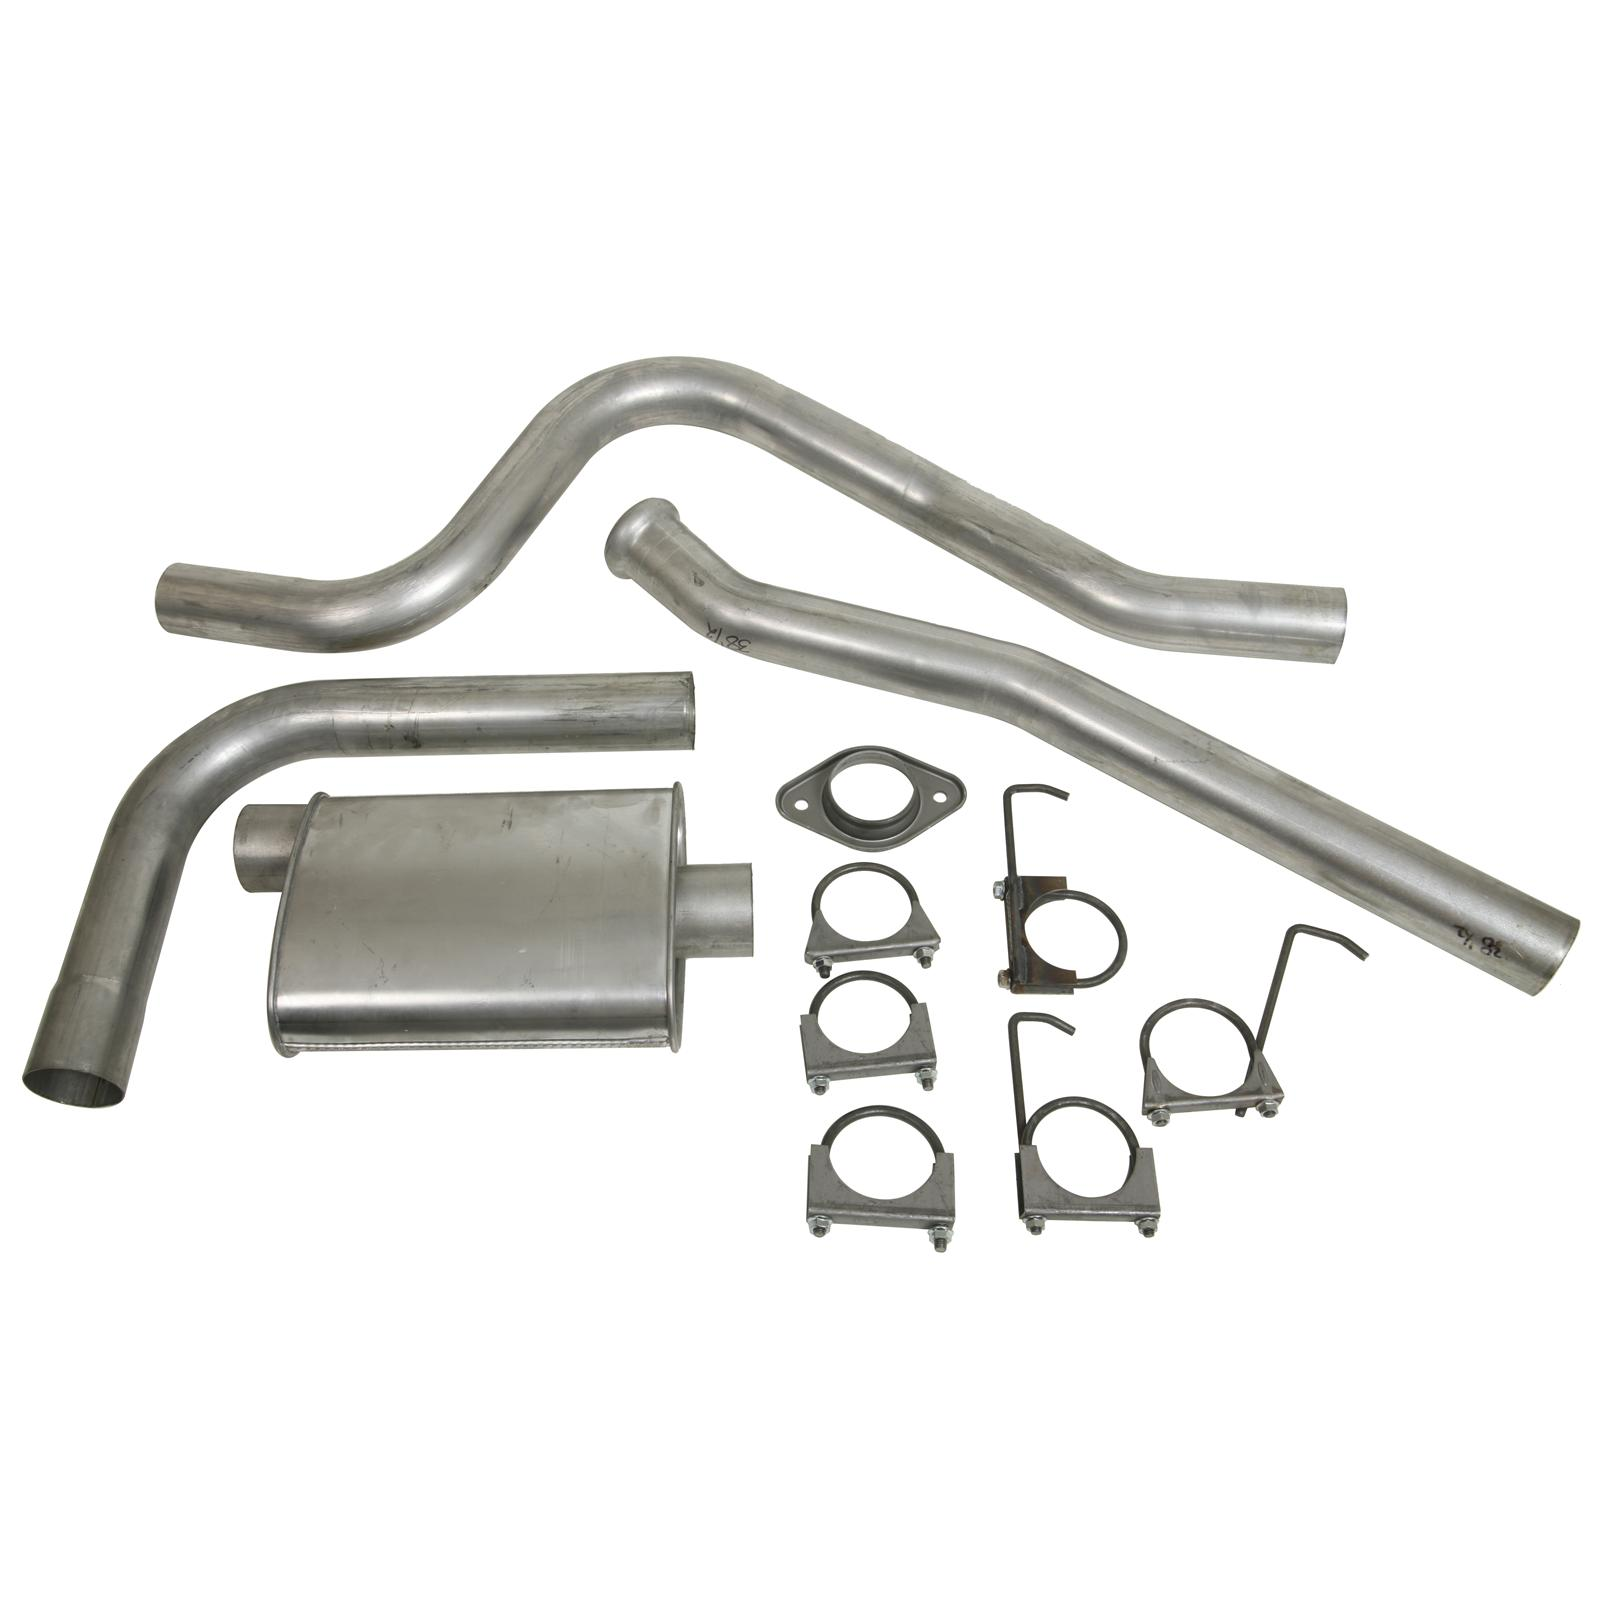 "Summit Exhaust Cat-Back 3.00 "" Psgr Side Exit Chevy"